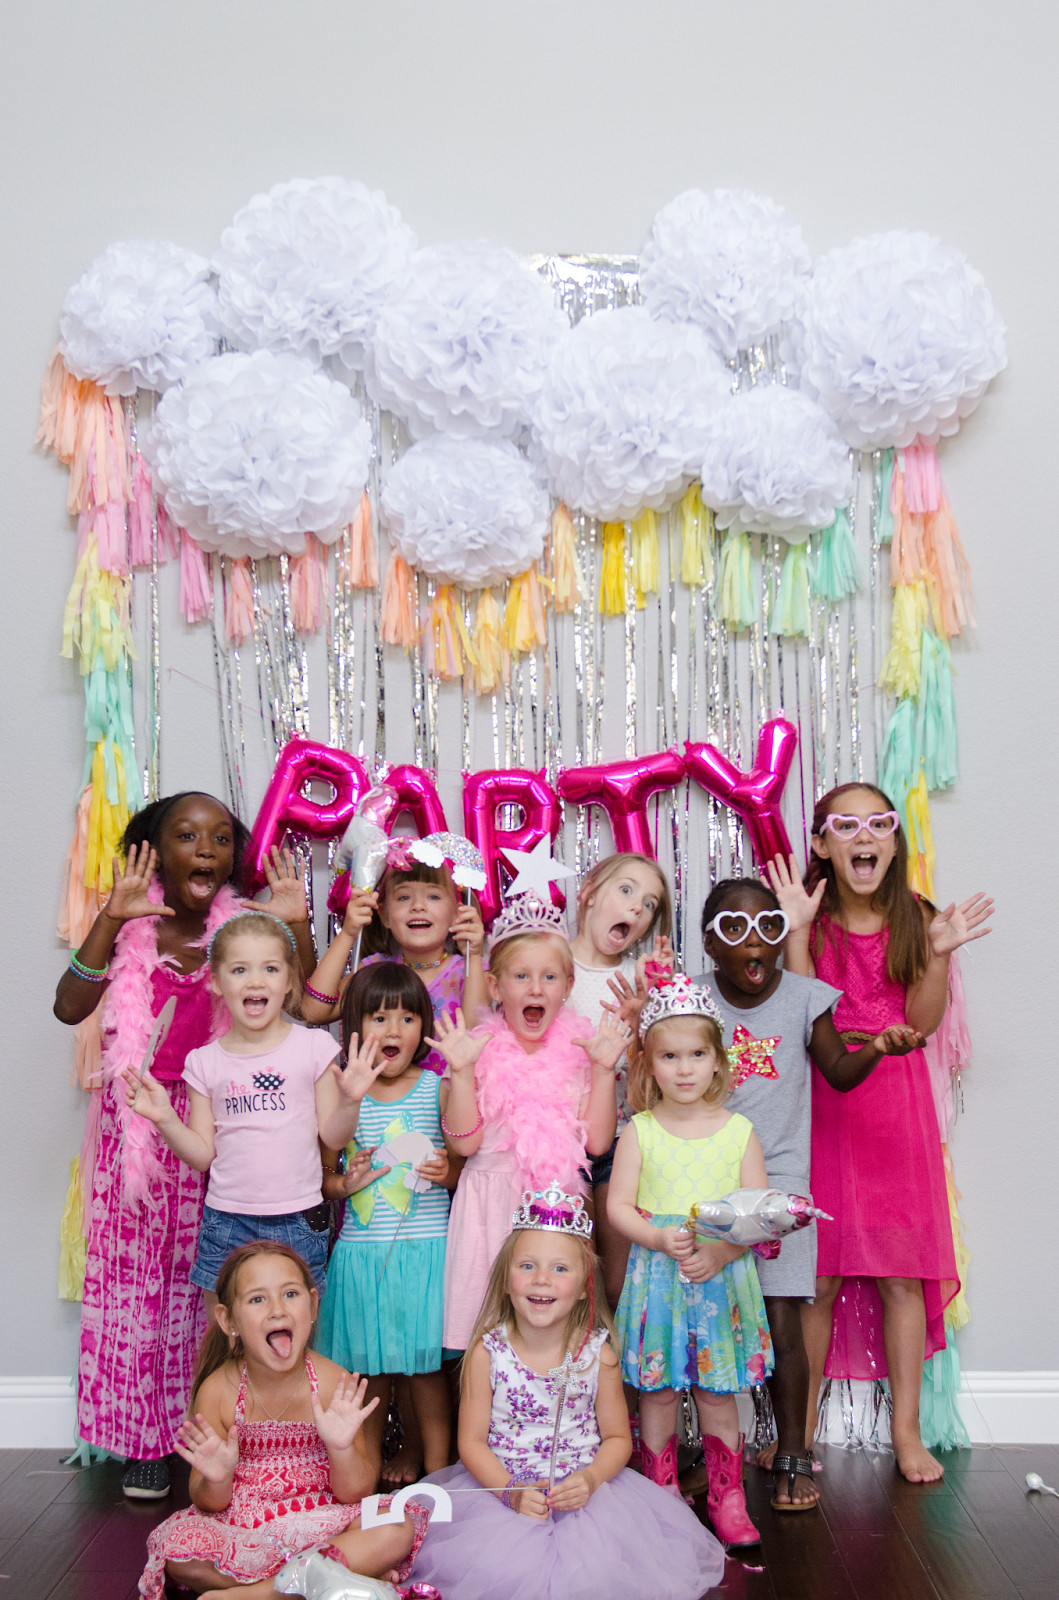 Best ideas about Birthday Party Photography . Save or Pin Birthday Party Booth Party Love Now.